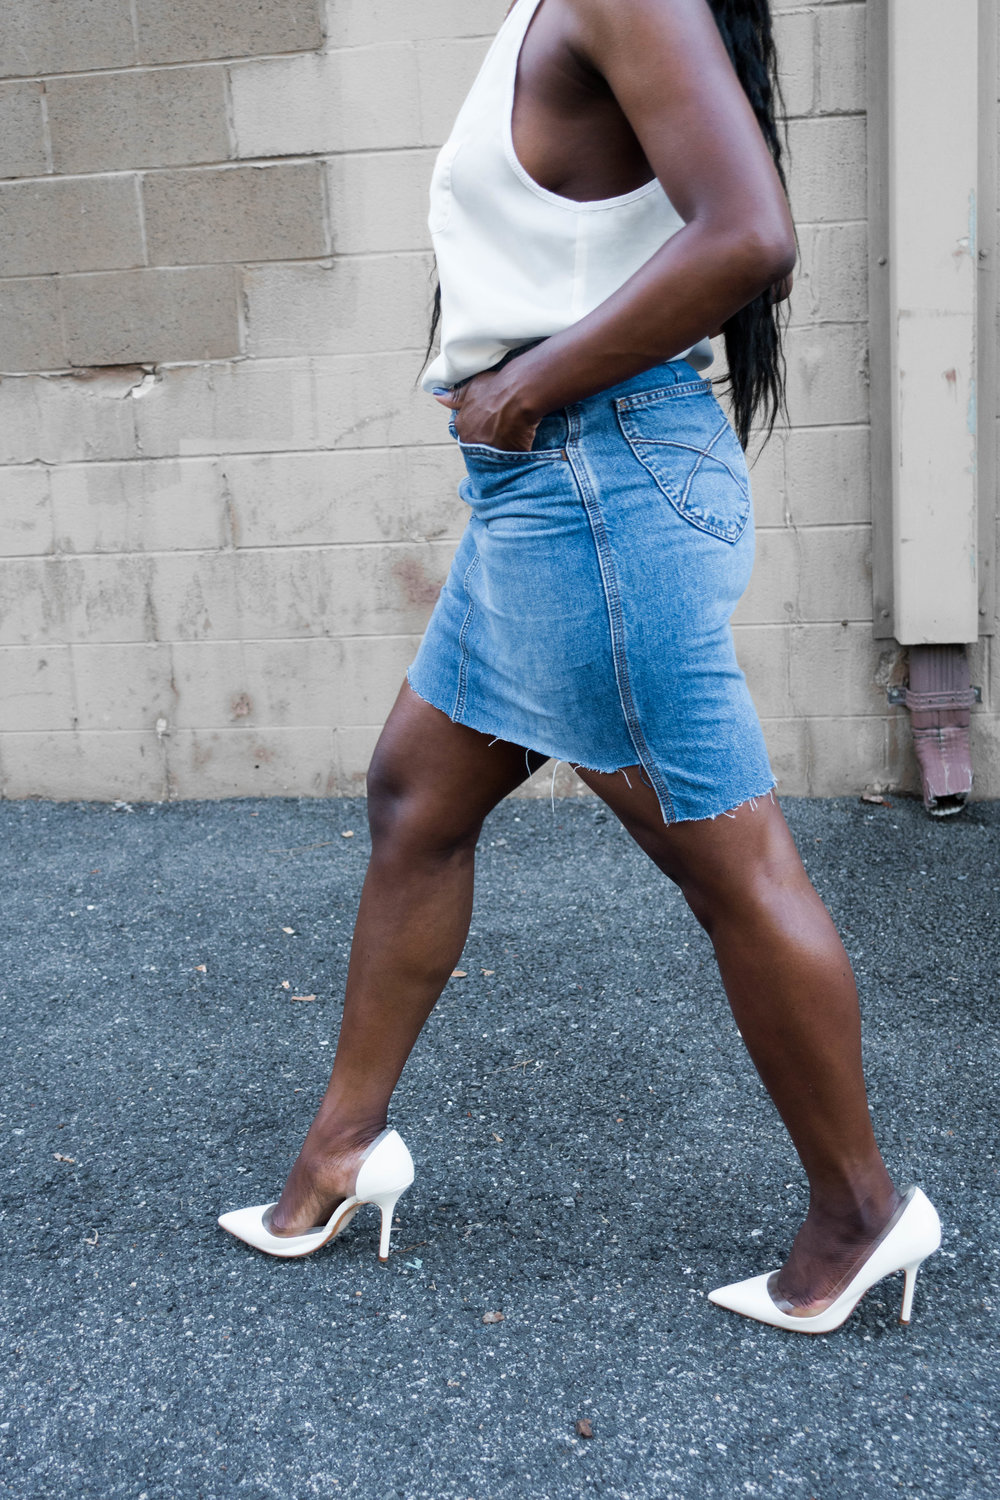 The-Glossier-Tasha-James-Fashion-Blogger-DC-Summer-2016-Raw-Hi-Lo-Hem-Denim-Skirt-Minimal-Style-9.jpg